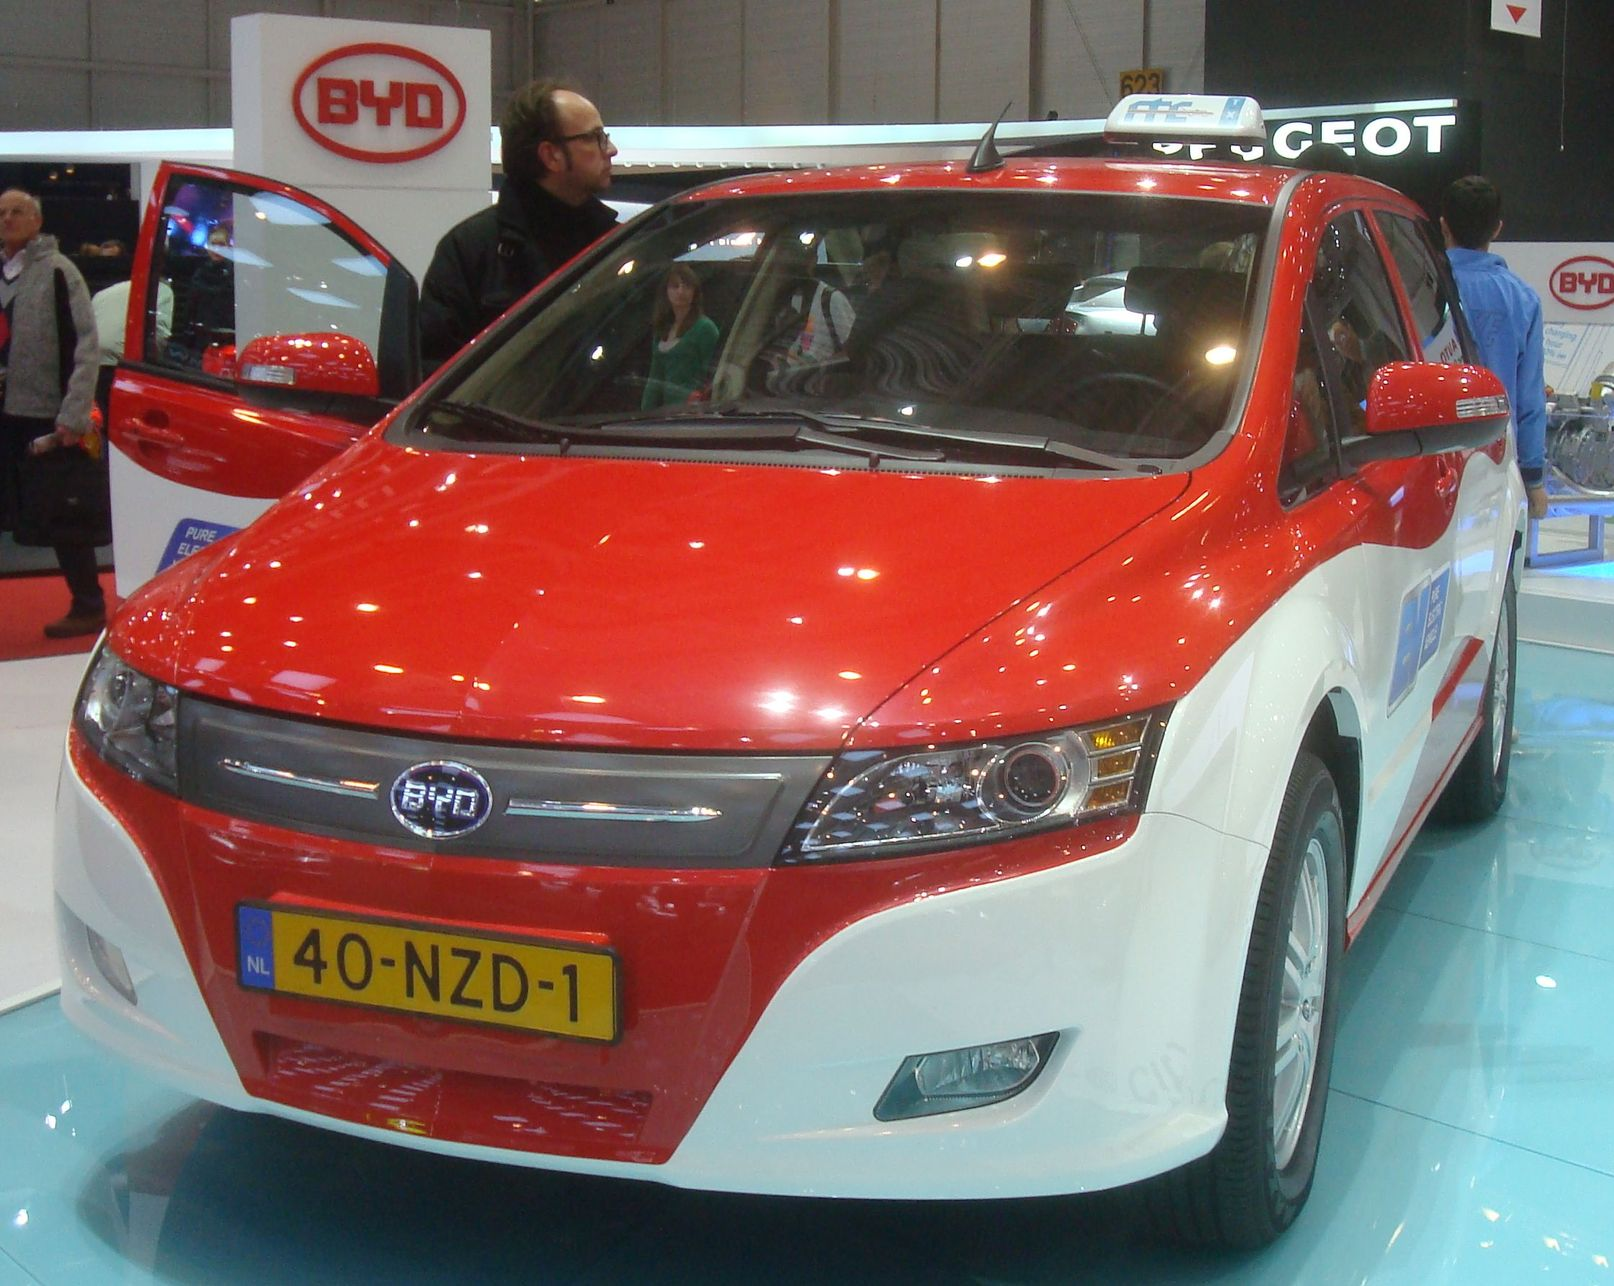 Byd Buy Your Dream (chine) Geneve Salon Automobile Mars 2011